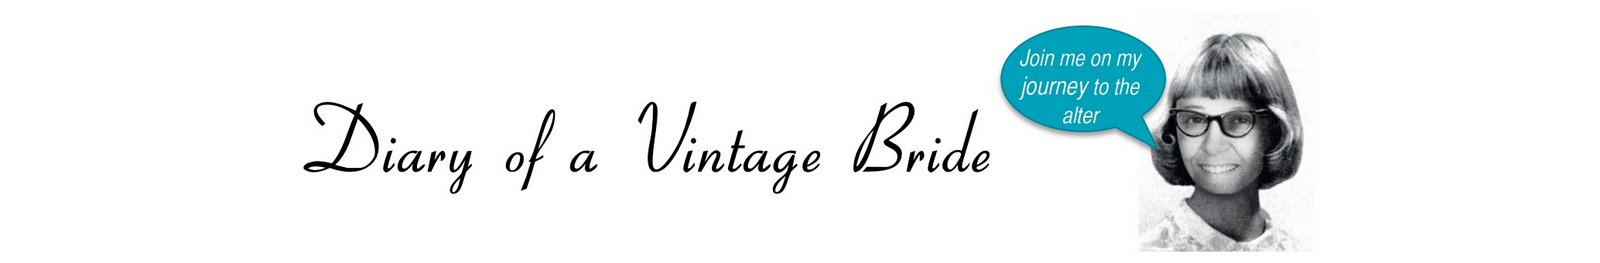 Diary of a Vintage Bride